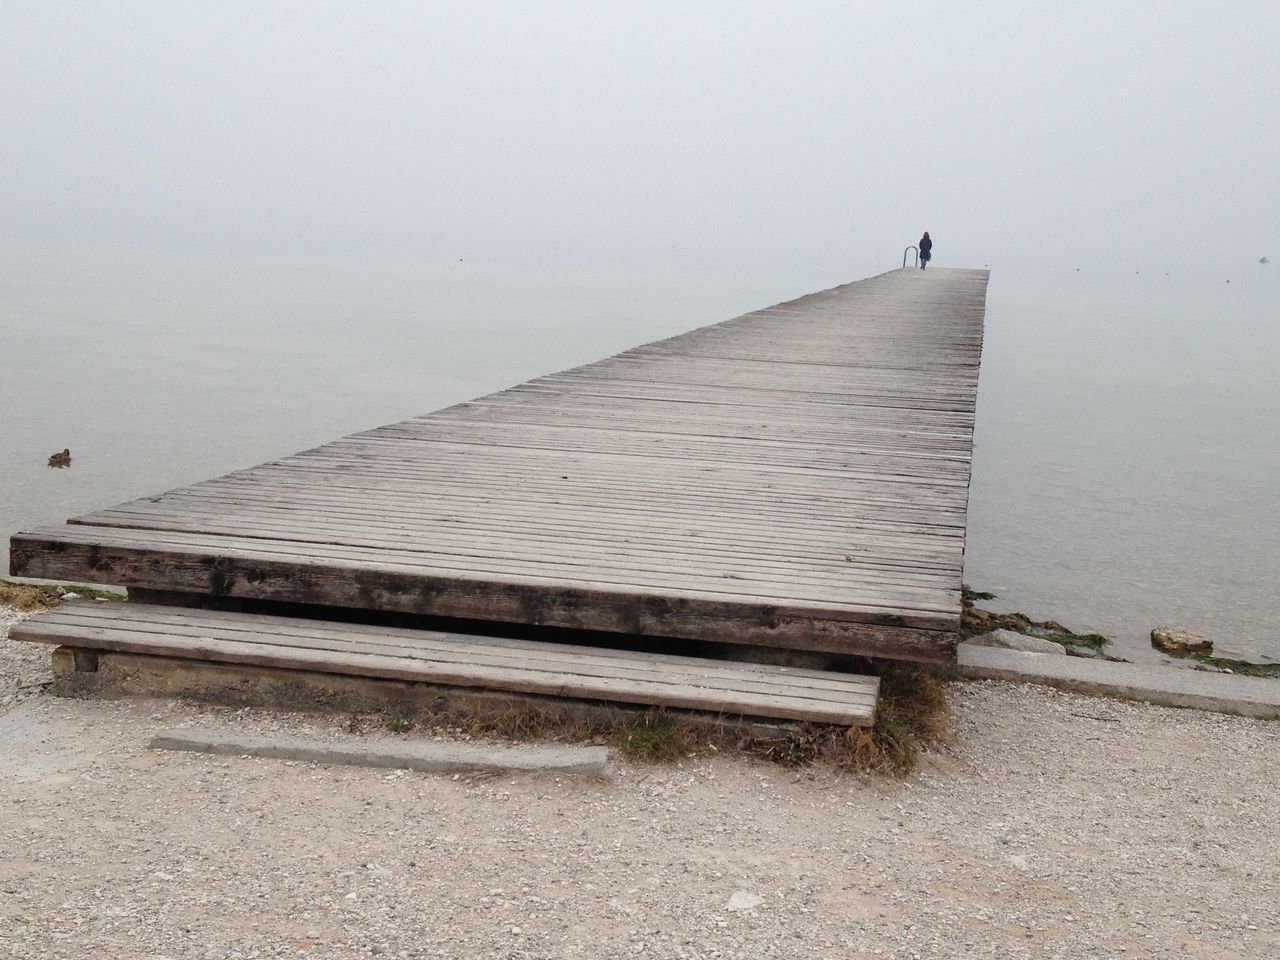 outdoors, day, tranquil scene, water, no people, nature, tranquility, scenics, beauty in nature, fog, sky